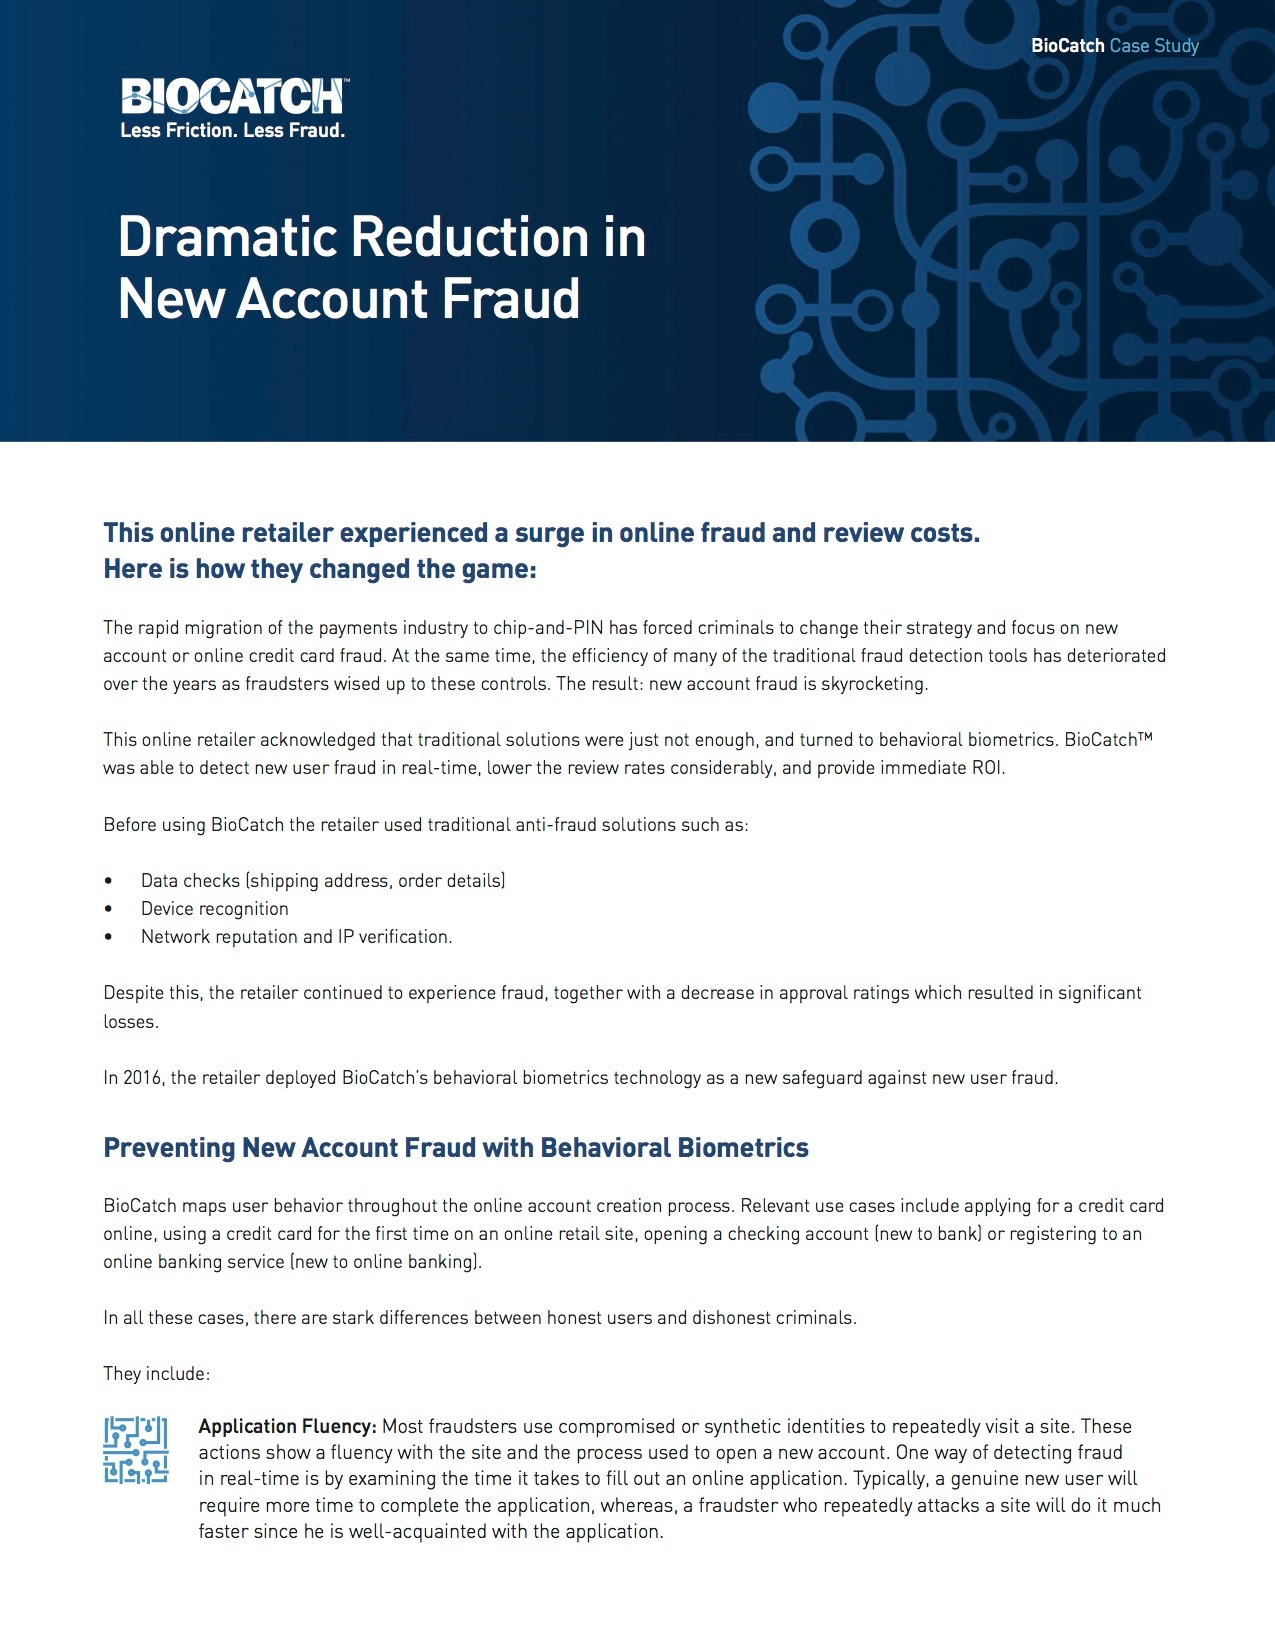 Dramatic Reduction in New Account Fraud (1)-1.jpg